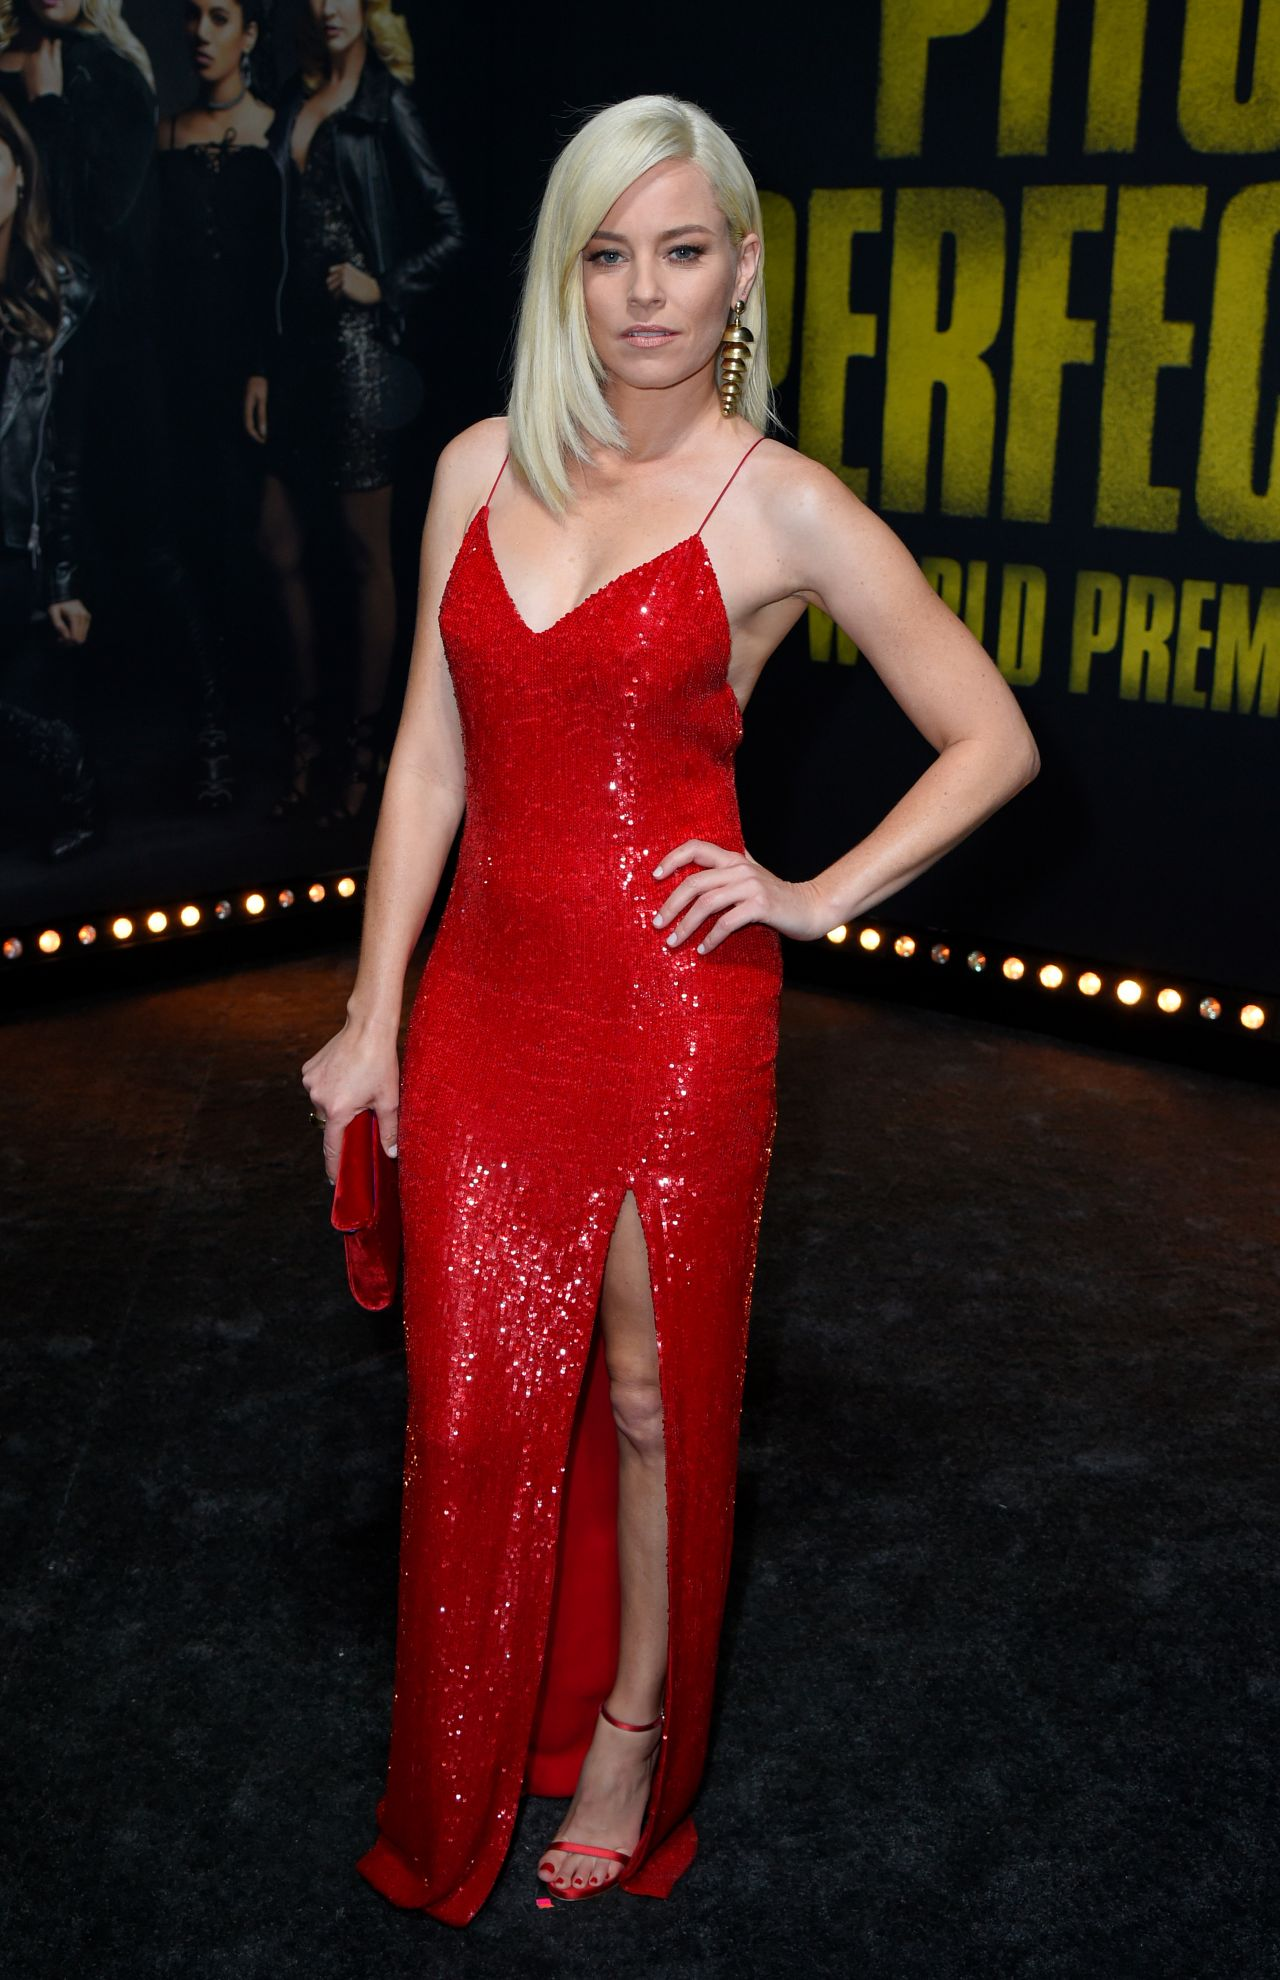 http://celebmafia.com/wp-content/uploads/2017/12/elizabeth-banks-pitch-perfect-3-premiere-in-los-angeles-2.jpg